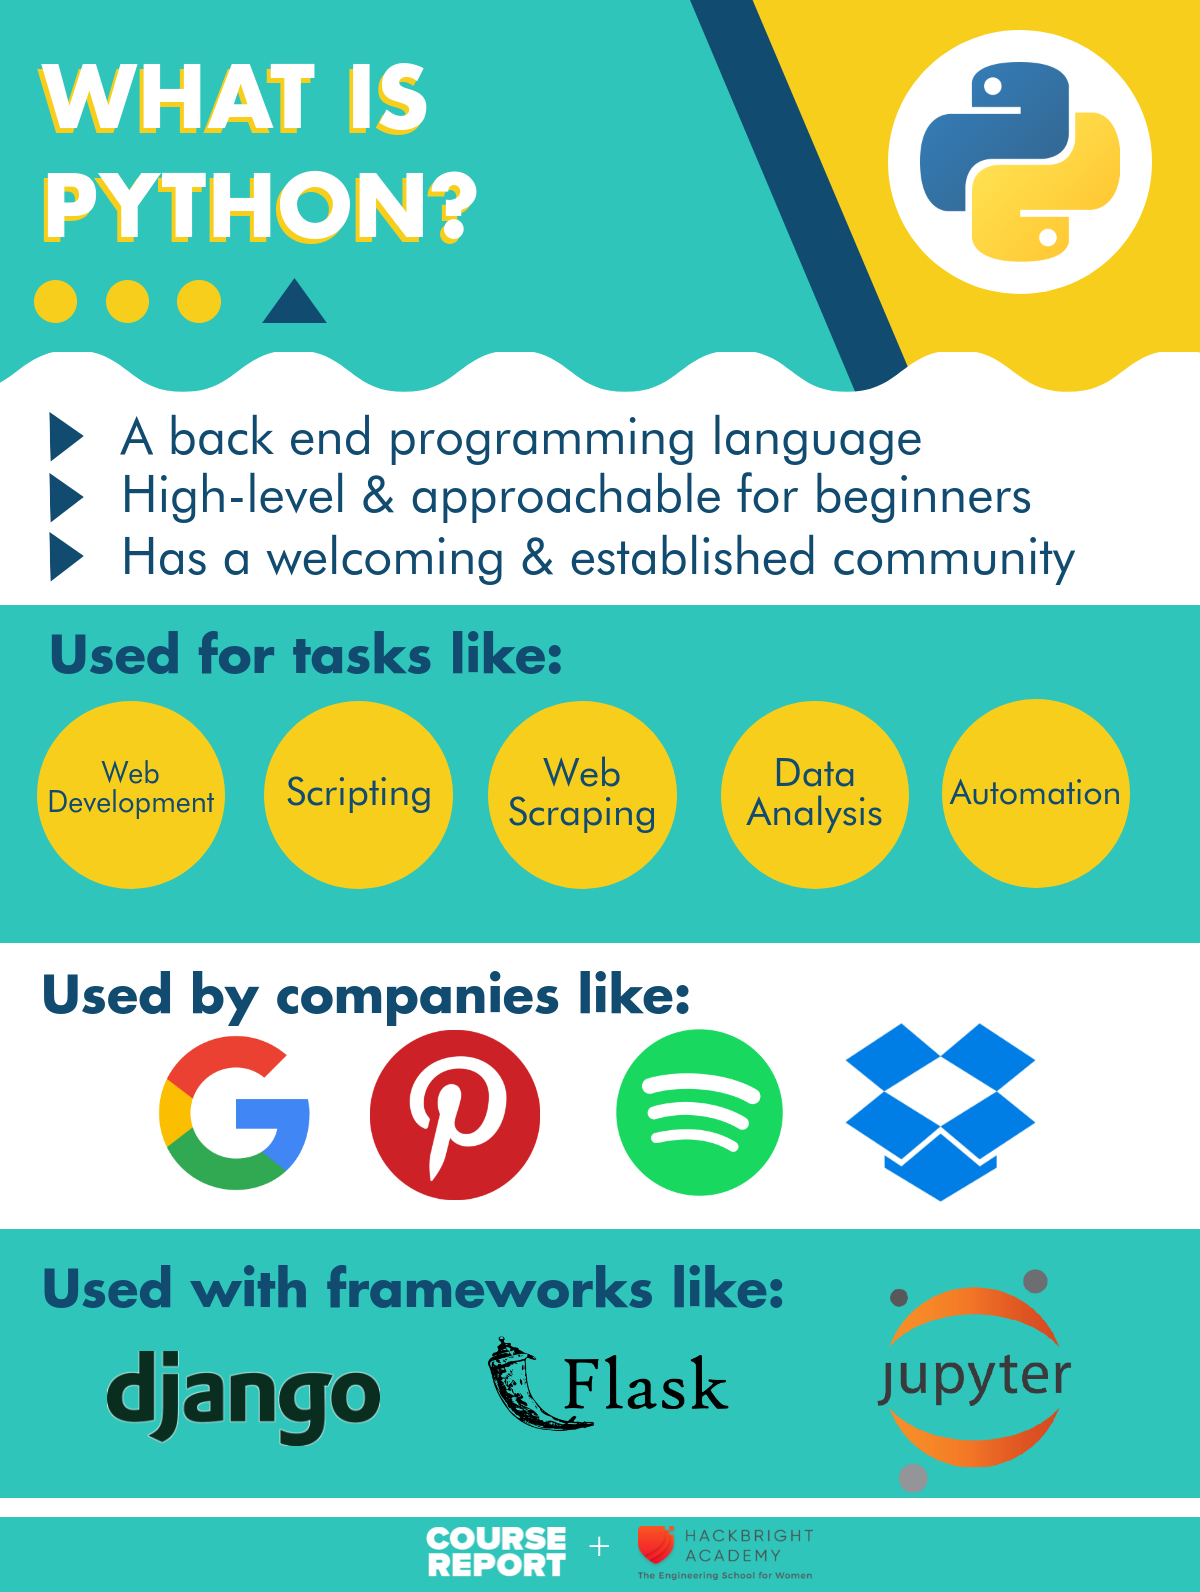 Beginner's Guide To Python: What is Python?